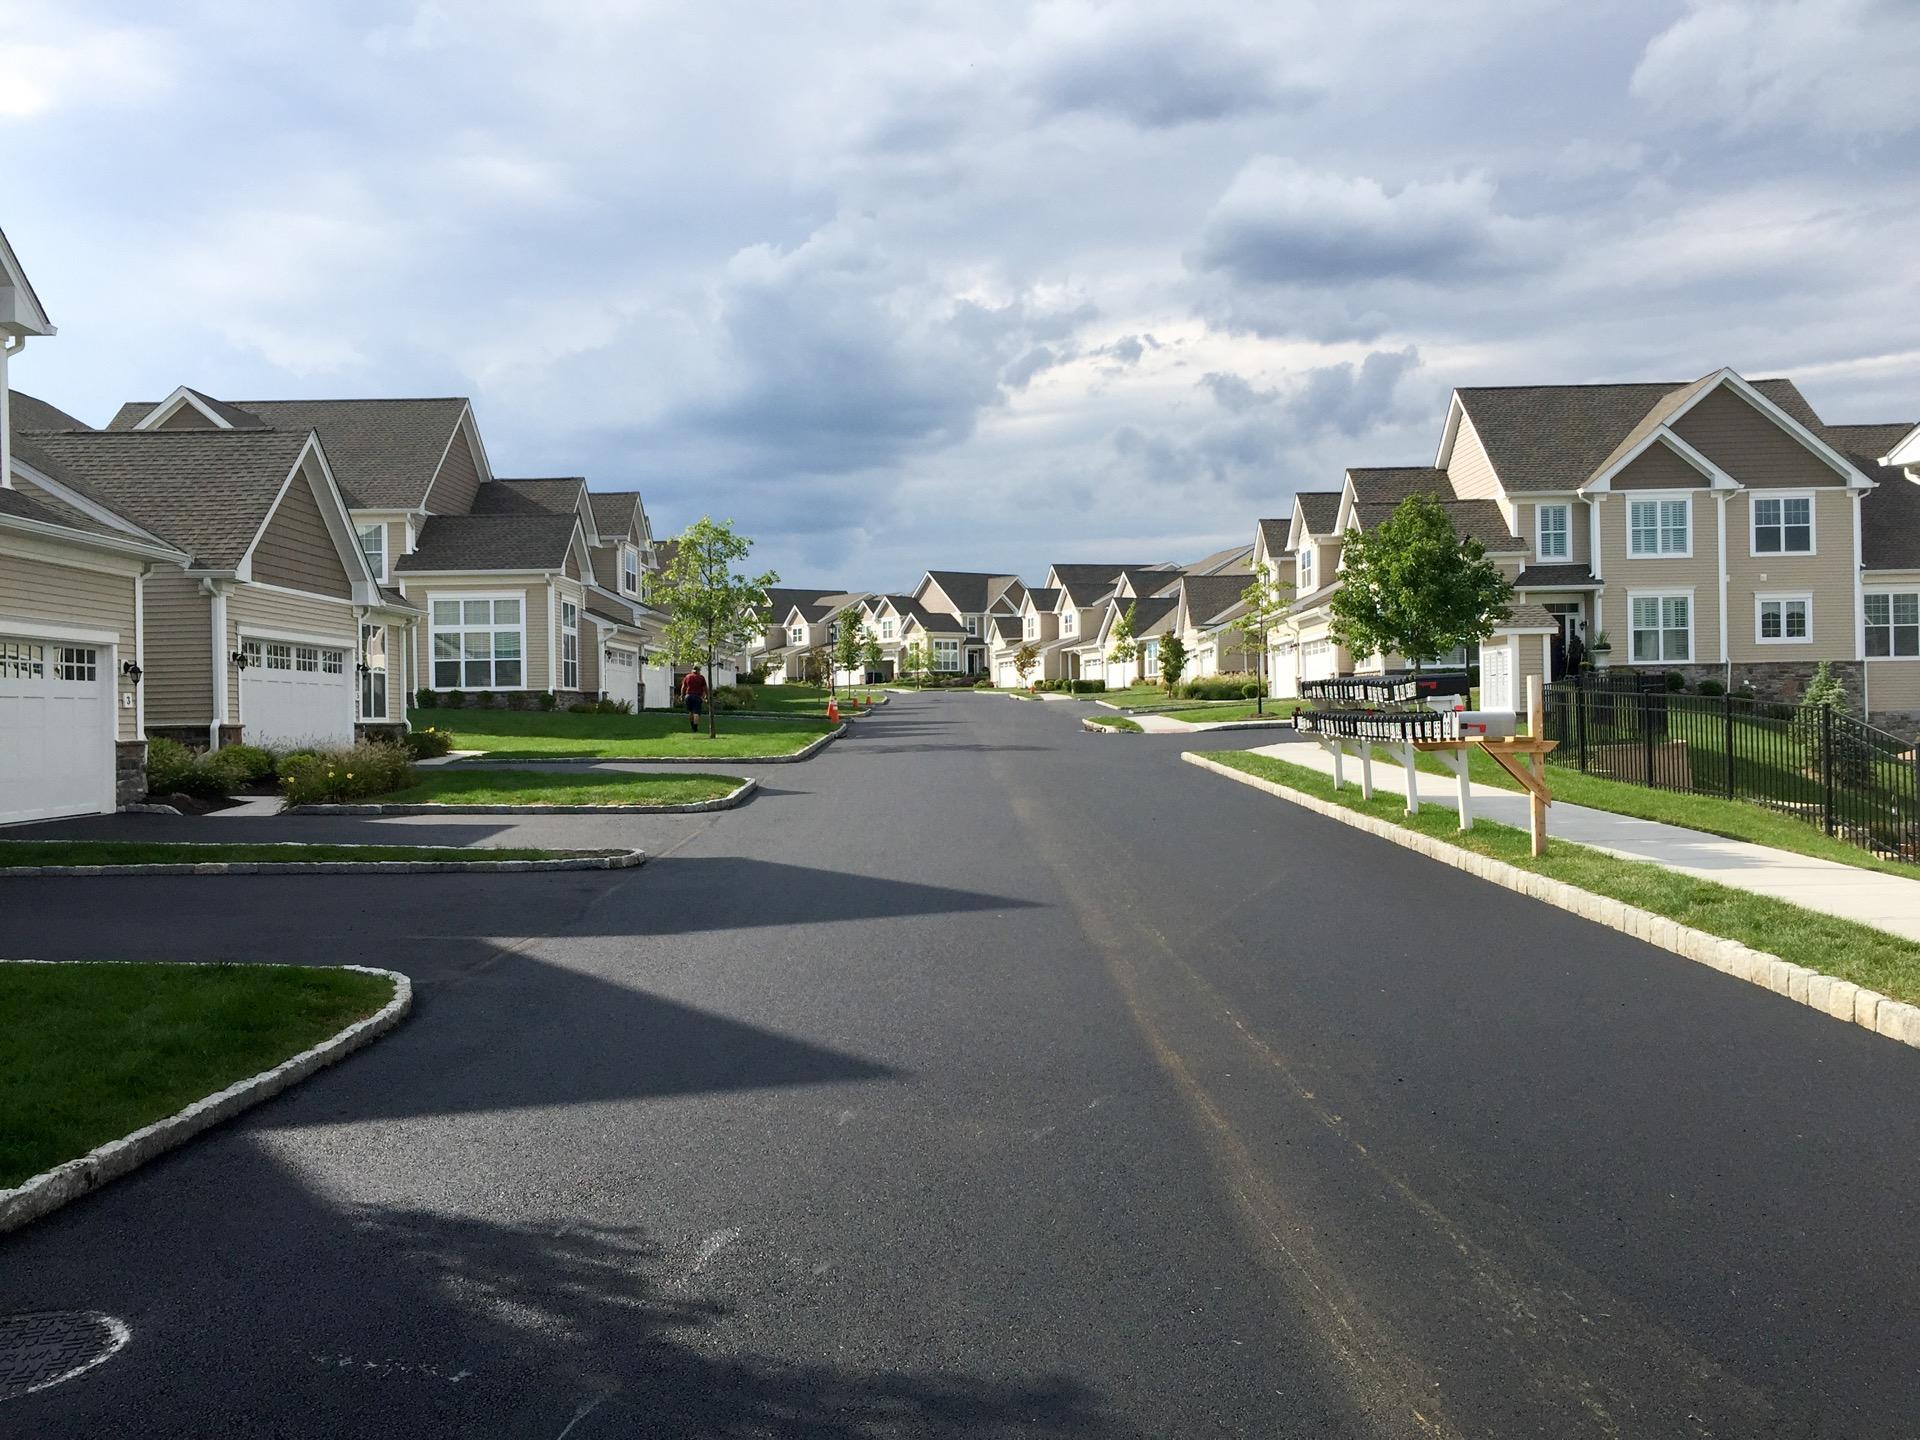 Rivington by Toll Brothers Project - American Pavement Specialists